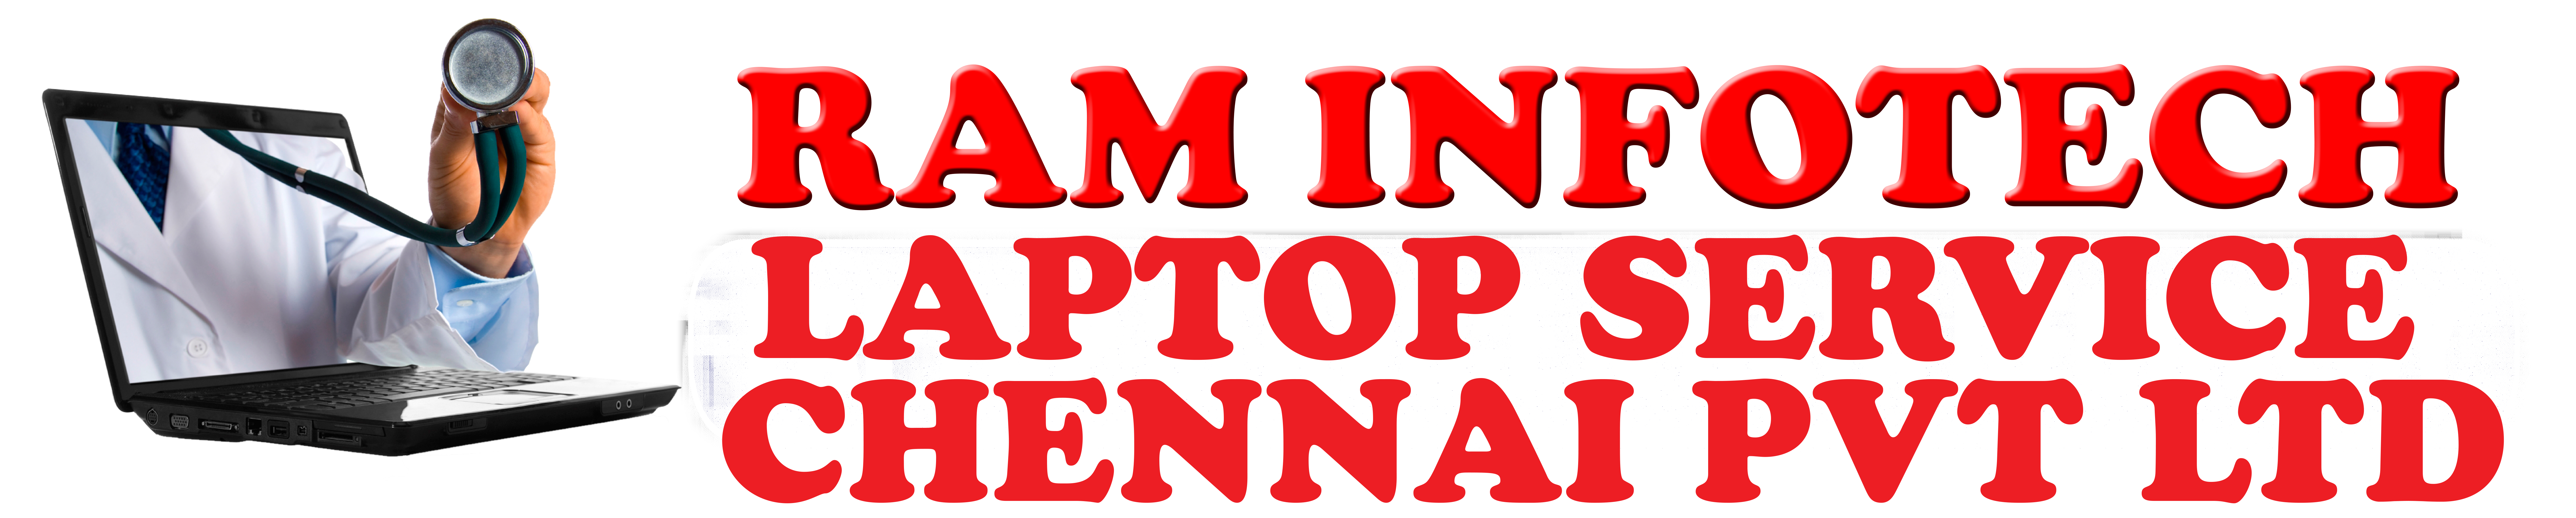 Raminfotech Laptop Services